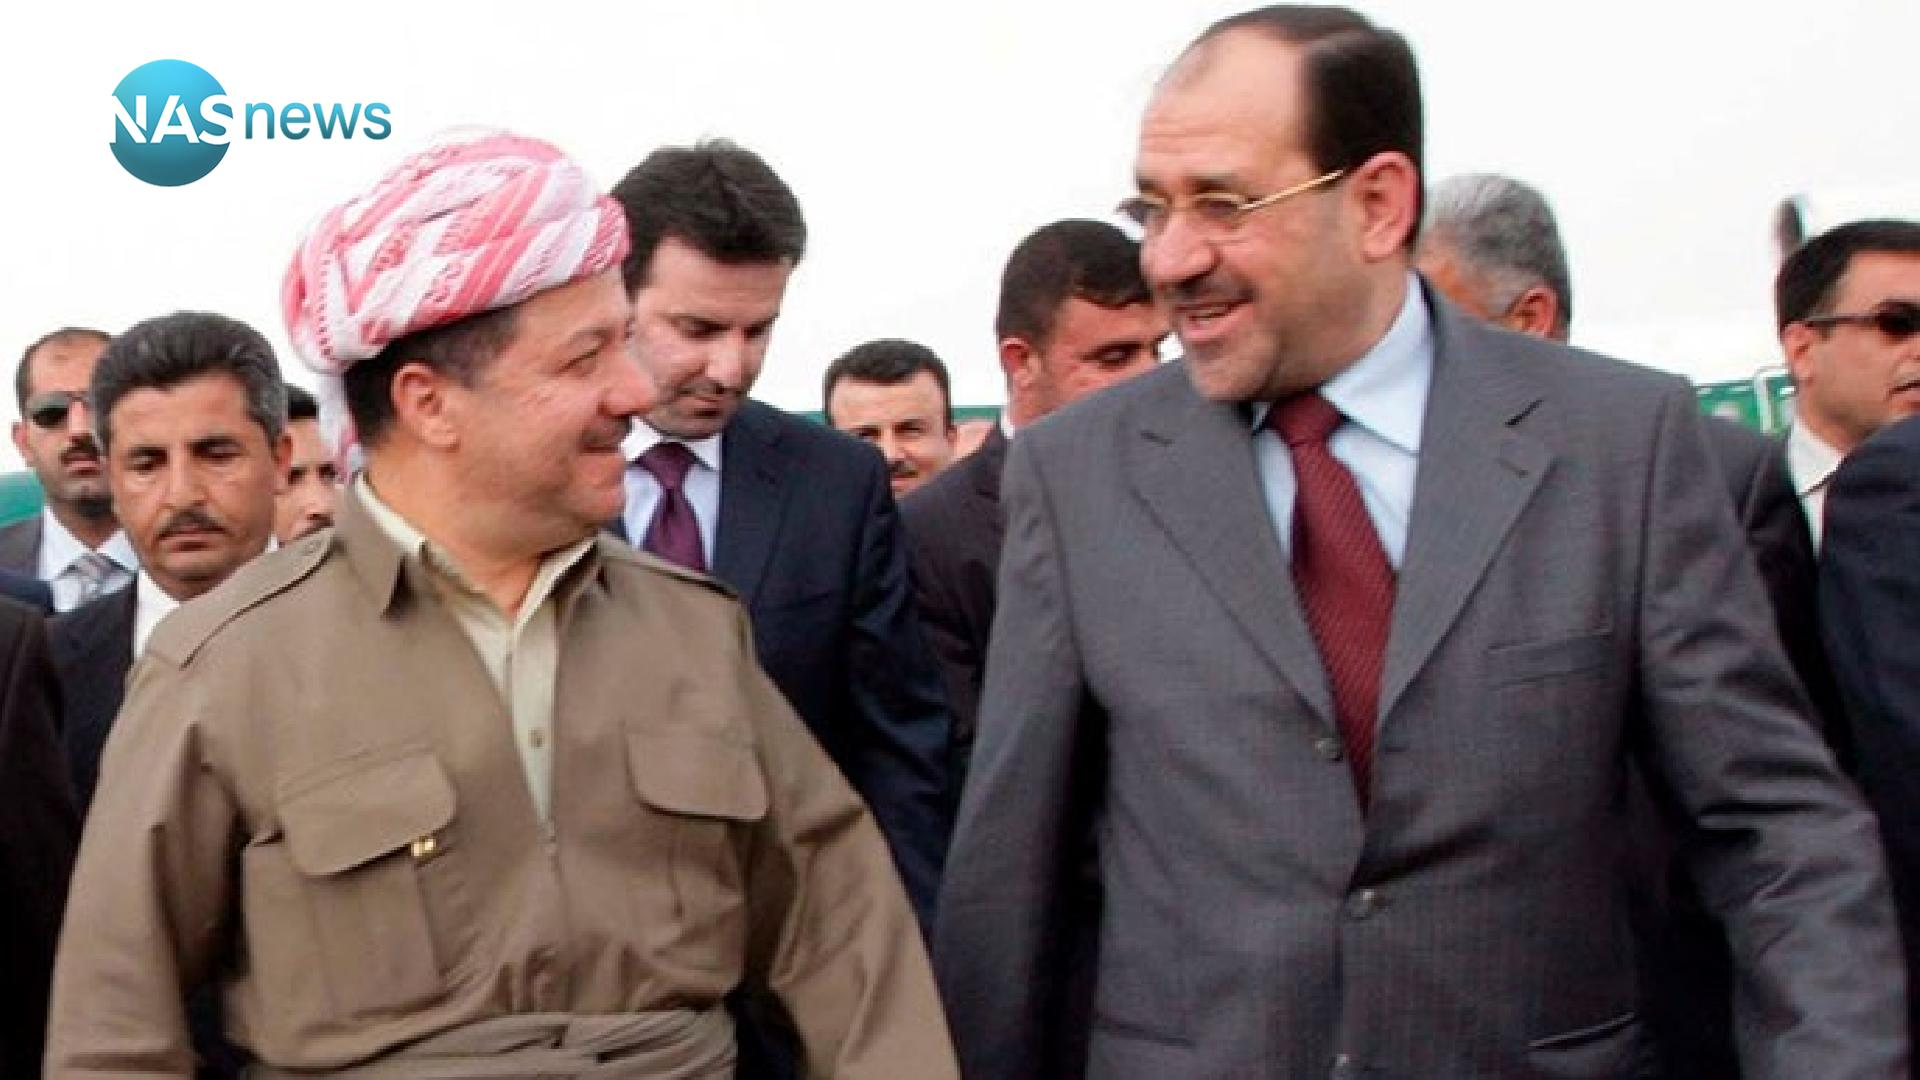 A member of Barzanis party - Al-Maliki is the most likely to get the position of prime minister